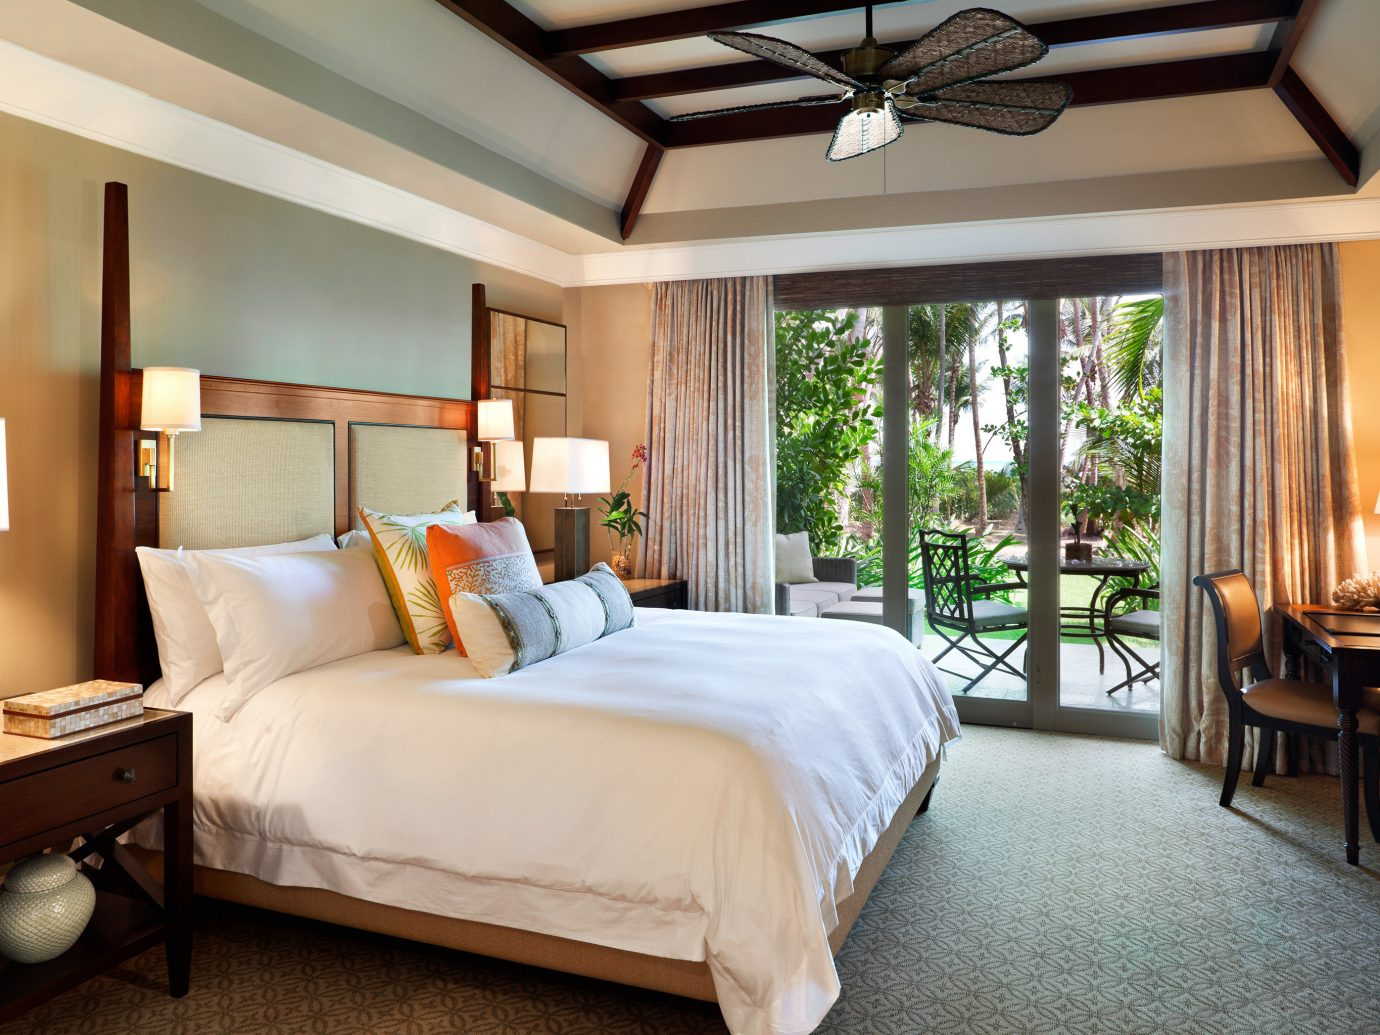 Bedroom Hotels Living Luxury Patio Resort Scenic views Trip Ideas bed indoor floor room wall hotel ceiling window property estate home Suite real estate living room cottage interior design Villa mansion